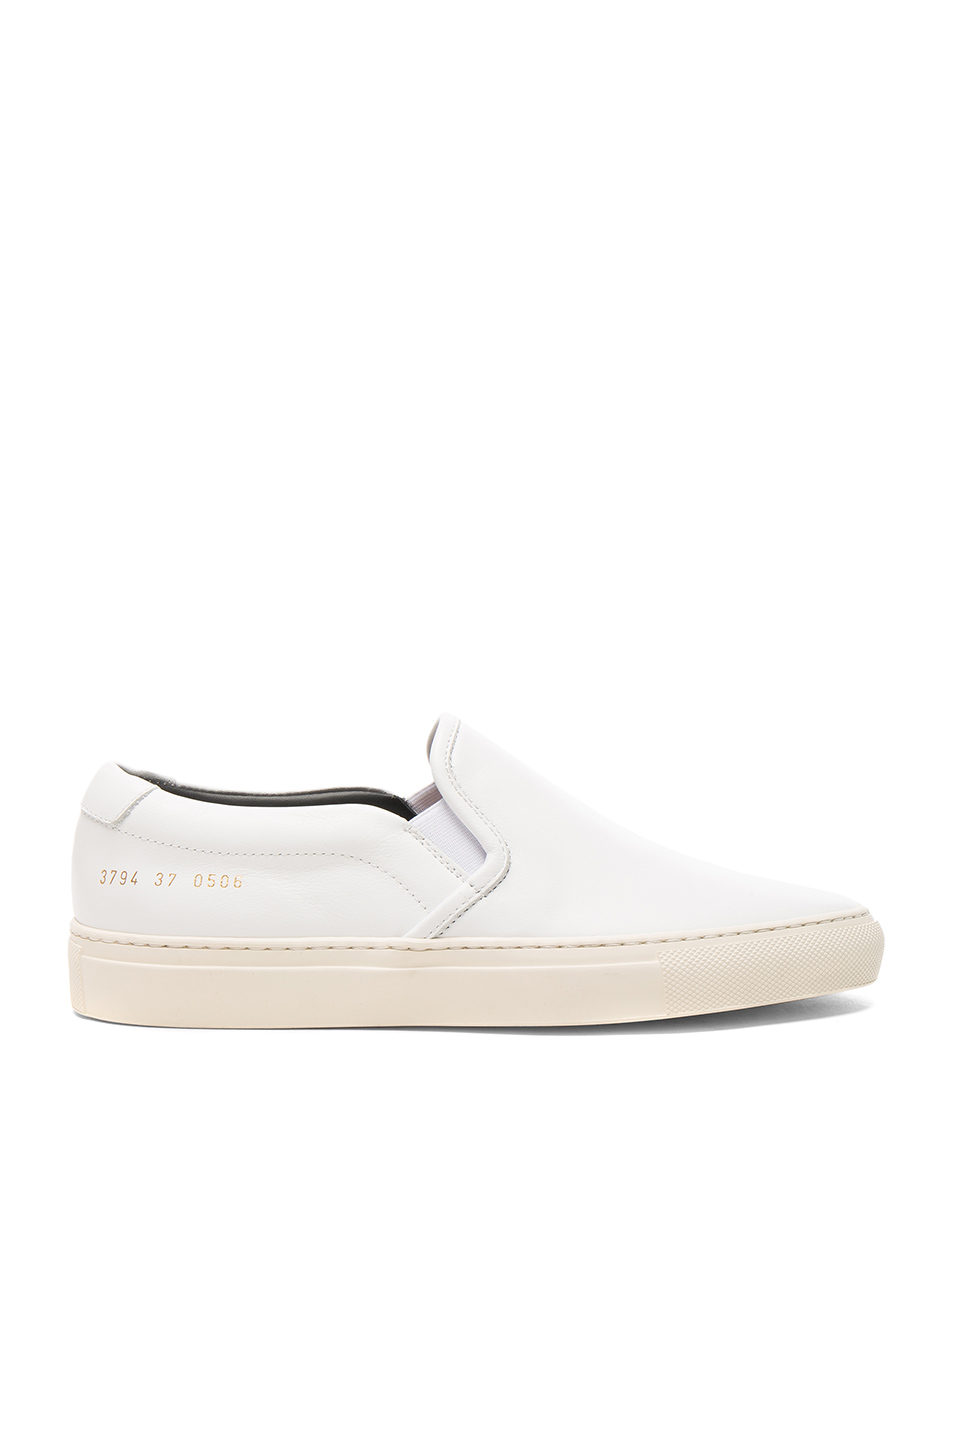 Common Projects Leather Slip on Retro in White